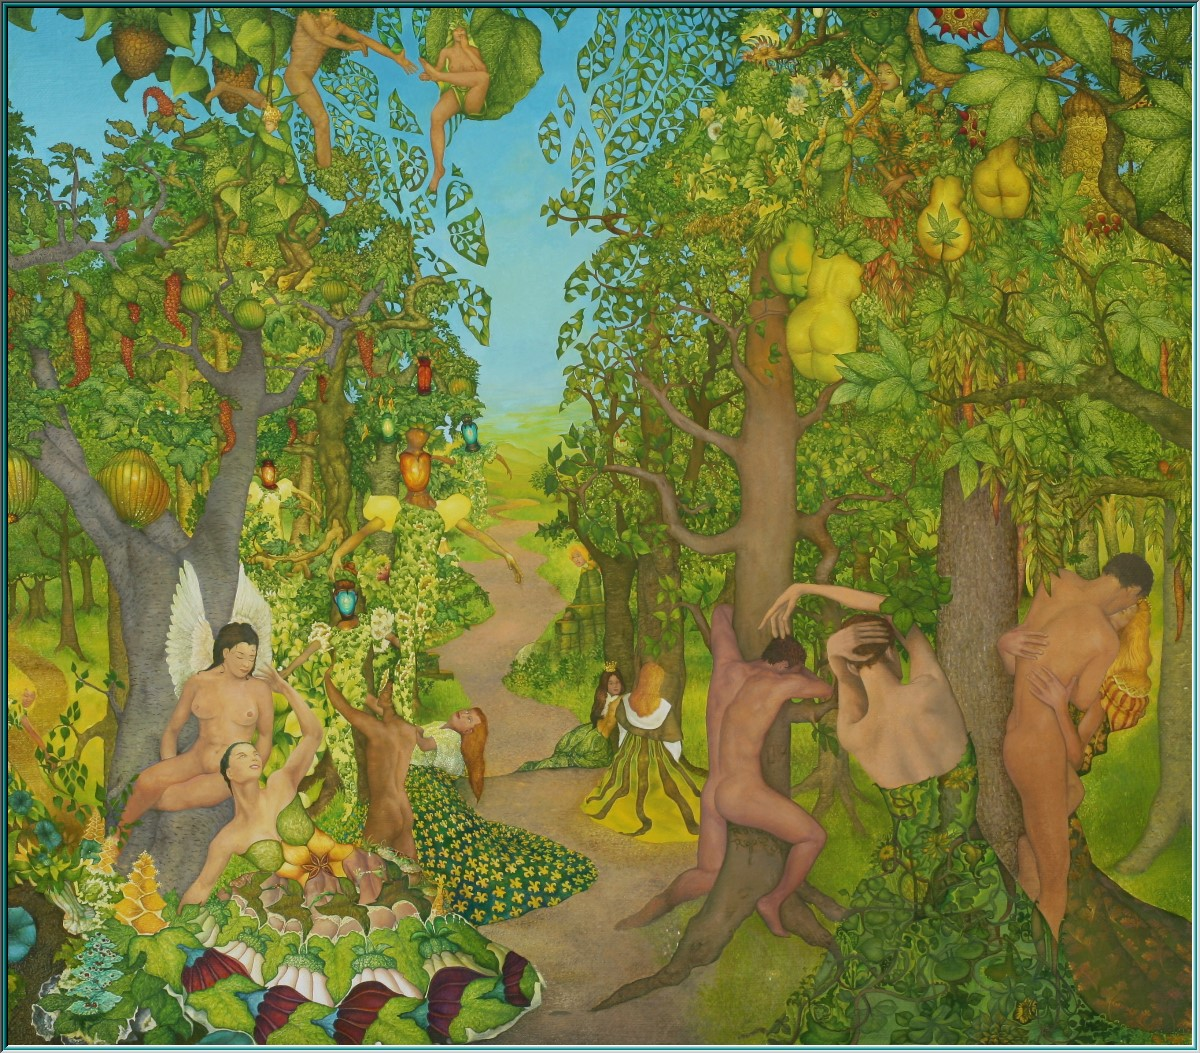 Adam and Eve, Garden of Eden, eroticism, Expulsion out of Paradise, Fall of man, Lukas, naked women, pear ass